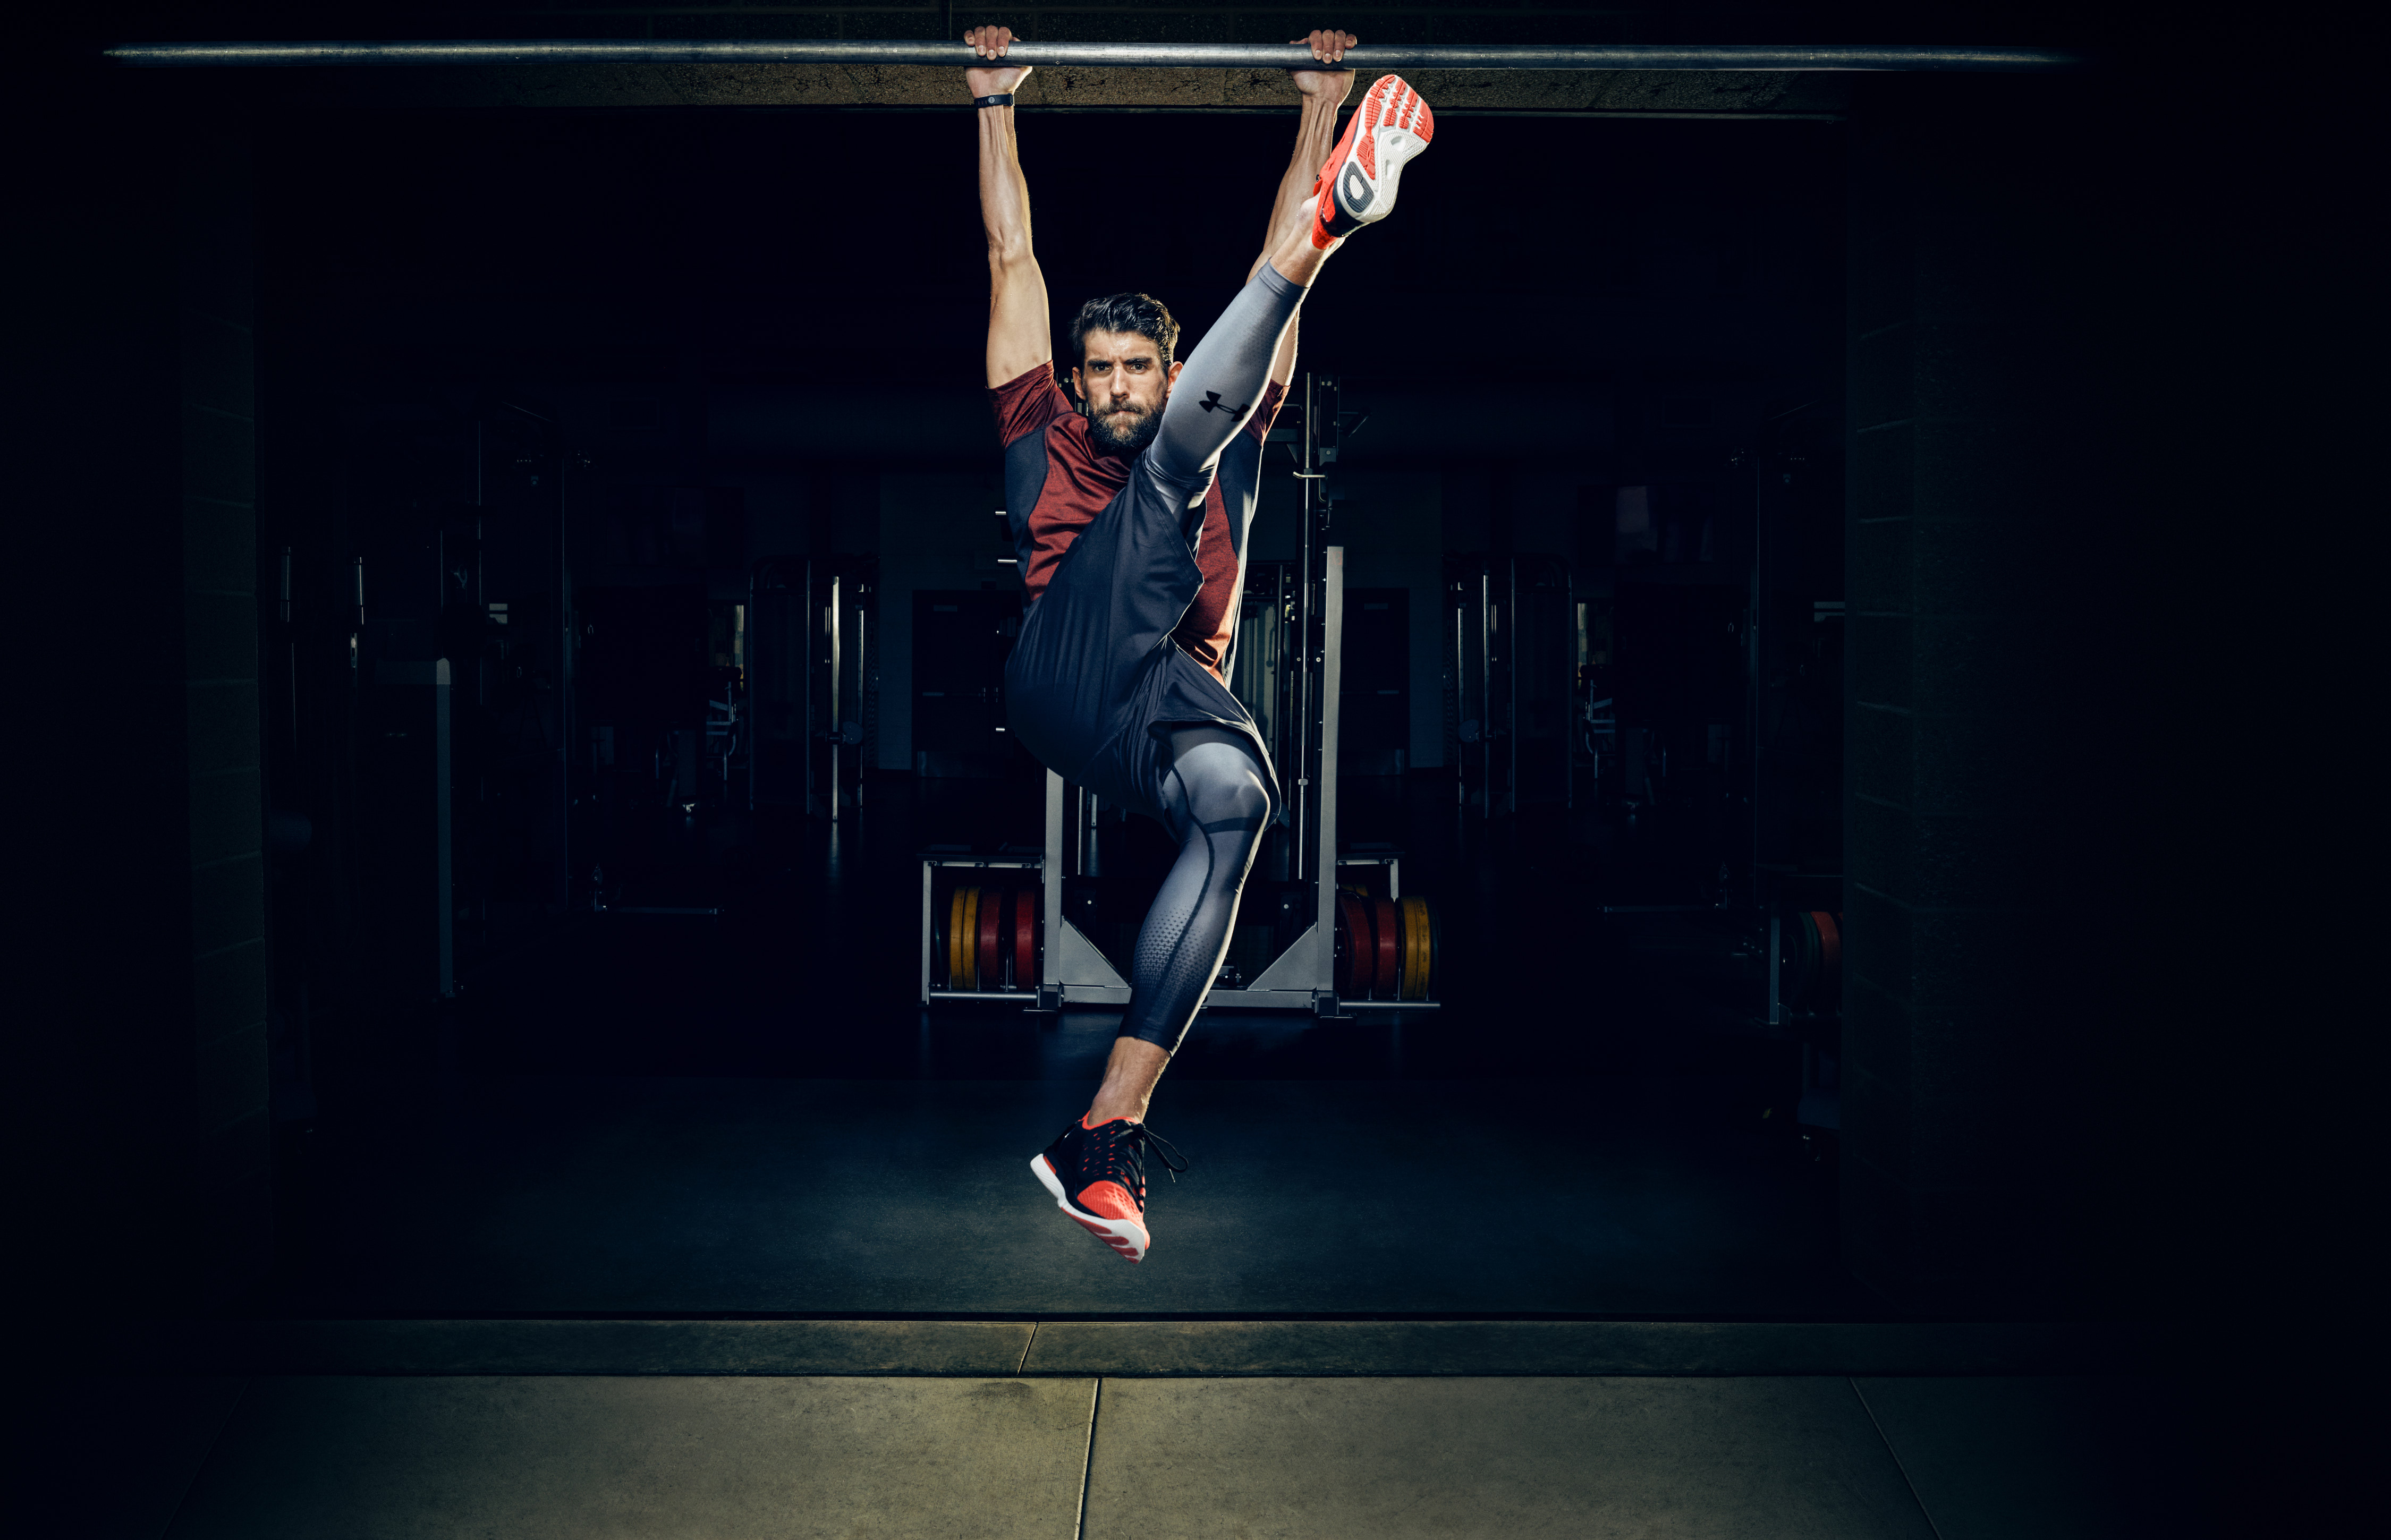 The latest ad from Under Armour focuses on Olympic swimming champion Michael Phelps.